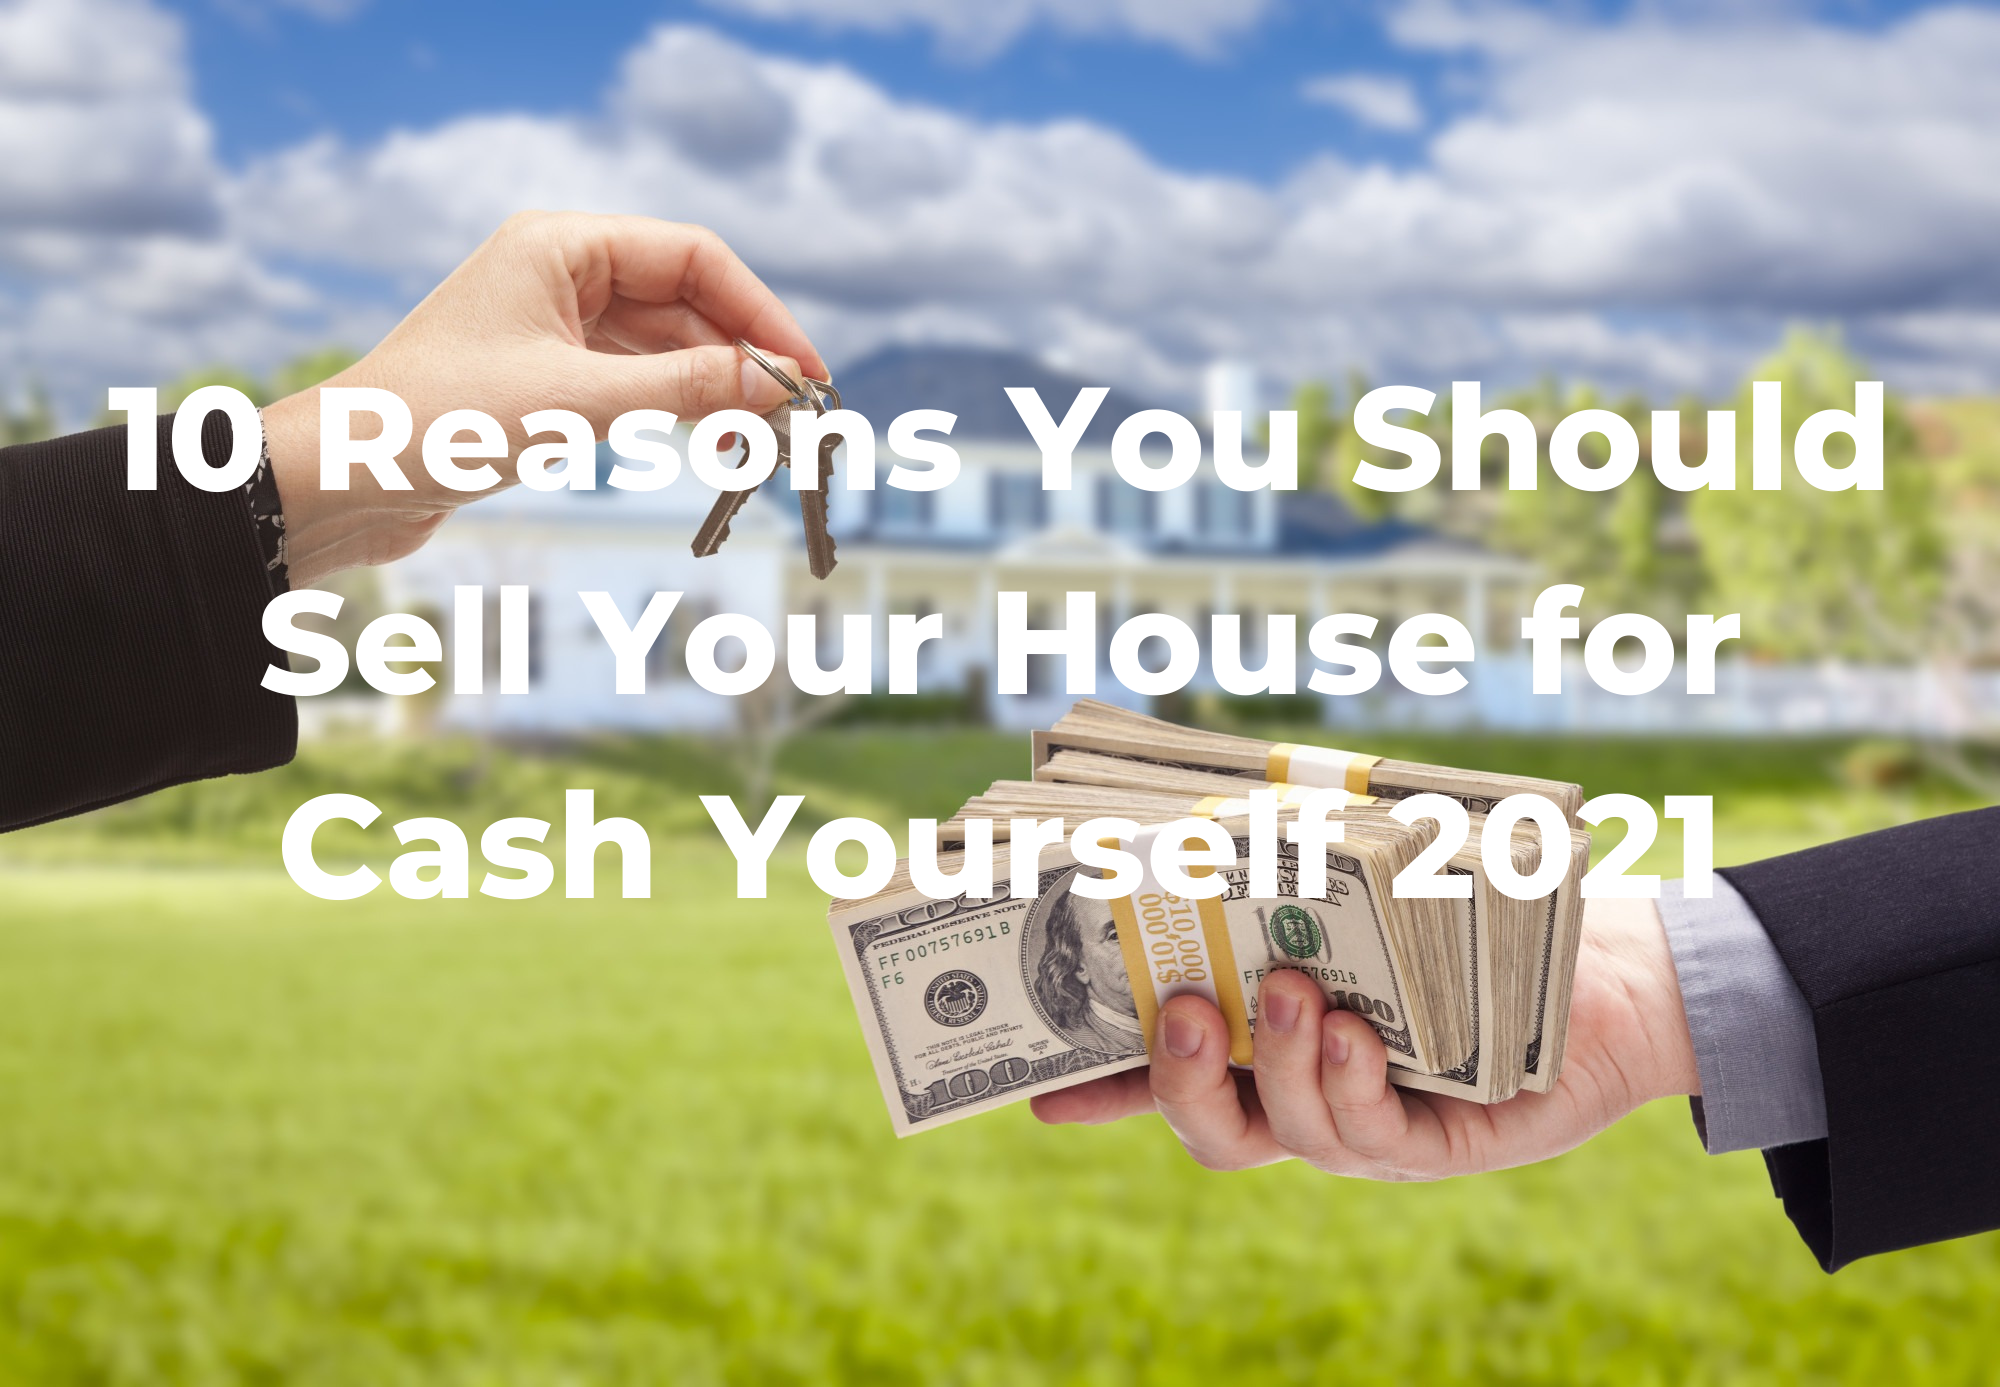 """The background shows a home owner exchanging their keys for cash, with a header that reads """"10 Reasons You Should Sell Your House for Cash Yourself 2021"""""""